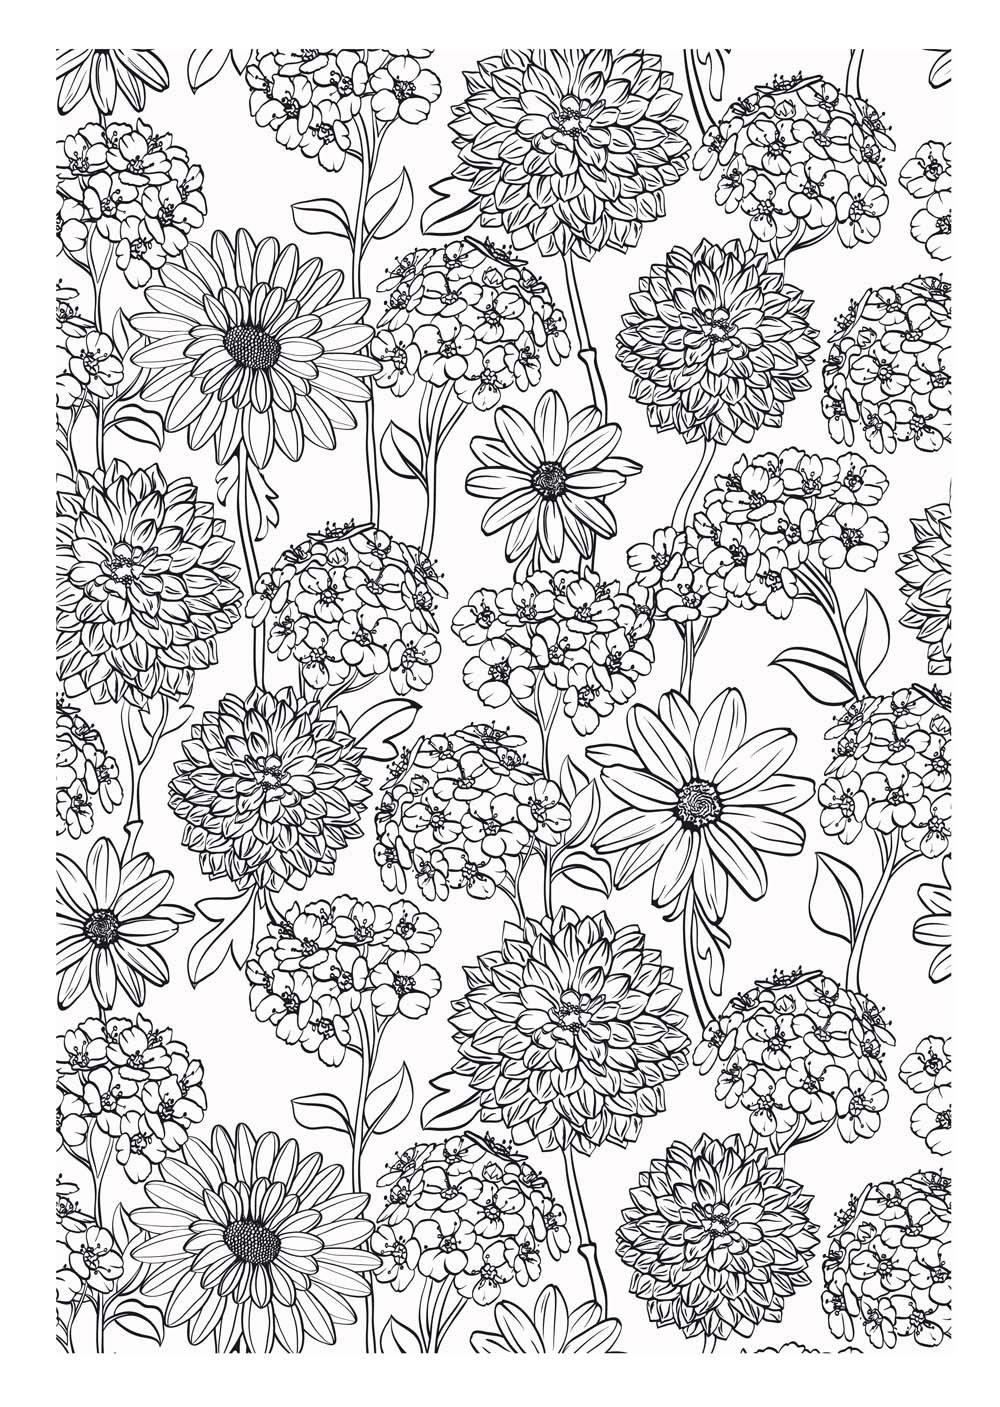 Coloriage Fleurs A Imprimer Adulte.Art Therapie 100 Coloriages Anti Stress Amazon Fr Collectif Livres